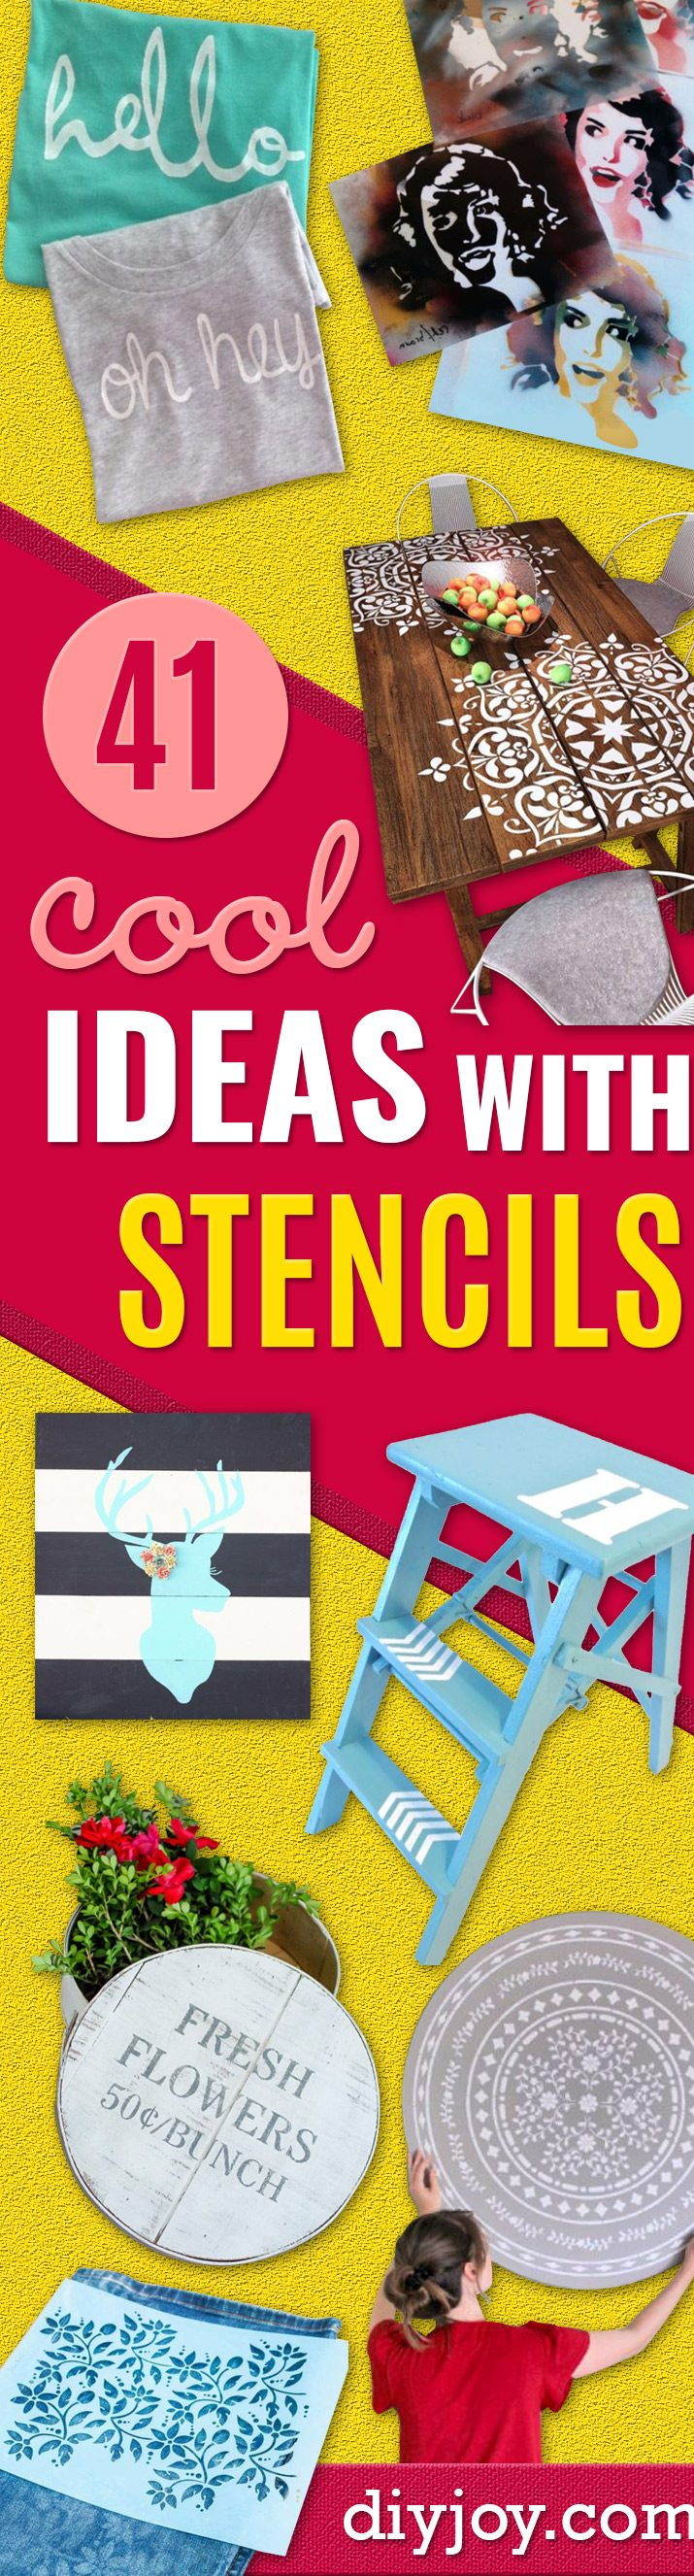 41 Super Cool Ideas Made With Stencils